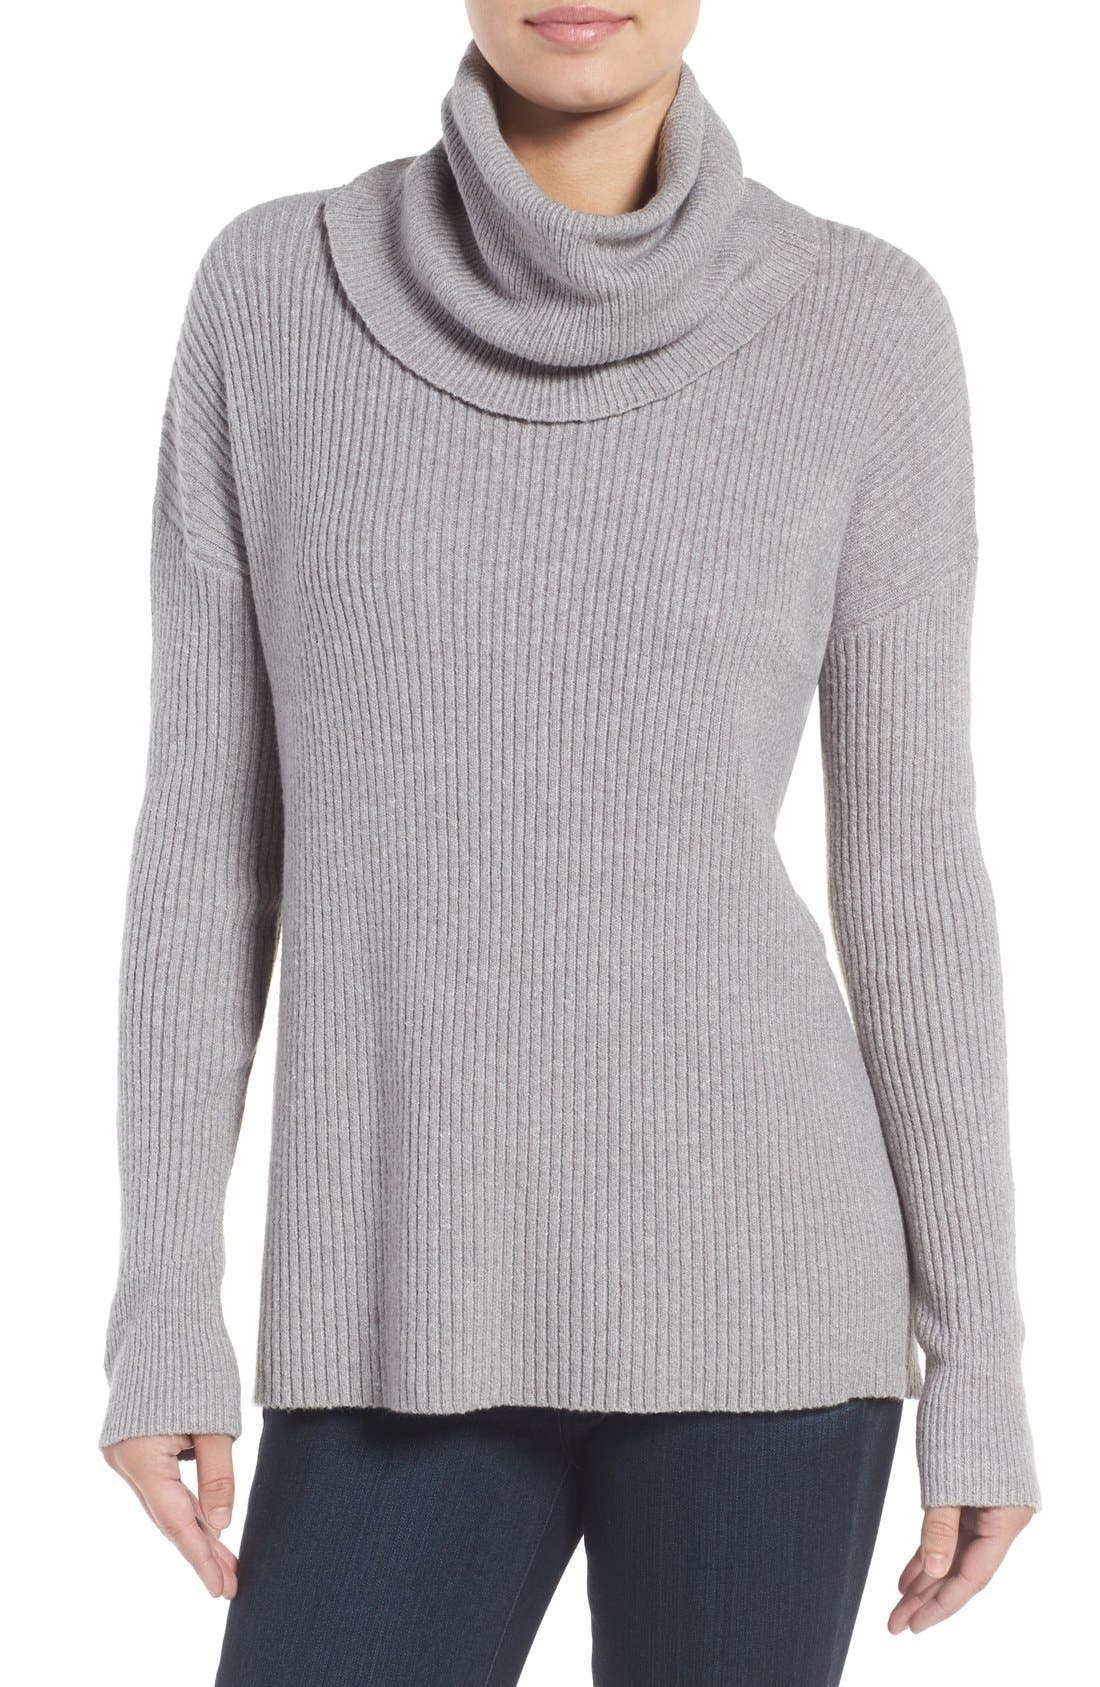 Main Image - cupcakes and cashmere Josh Turtleneck Sweater